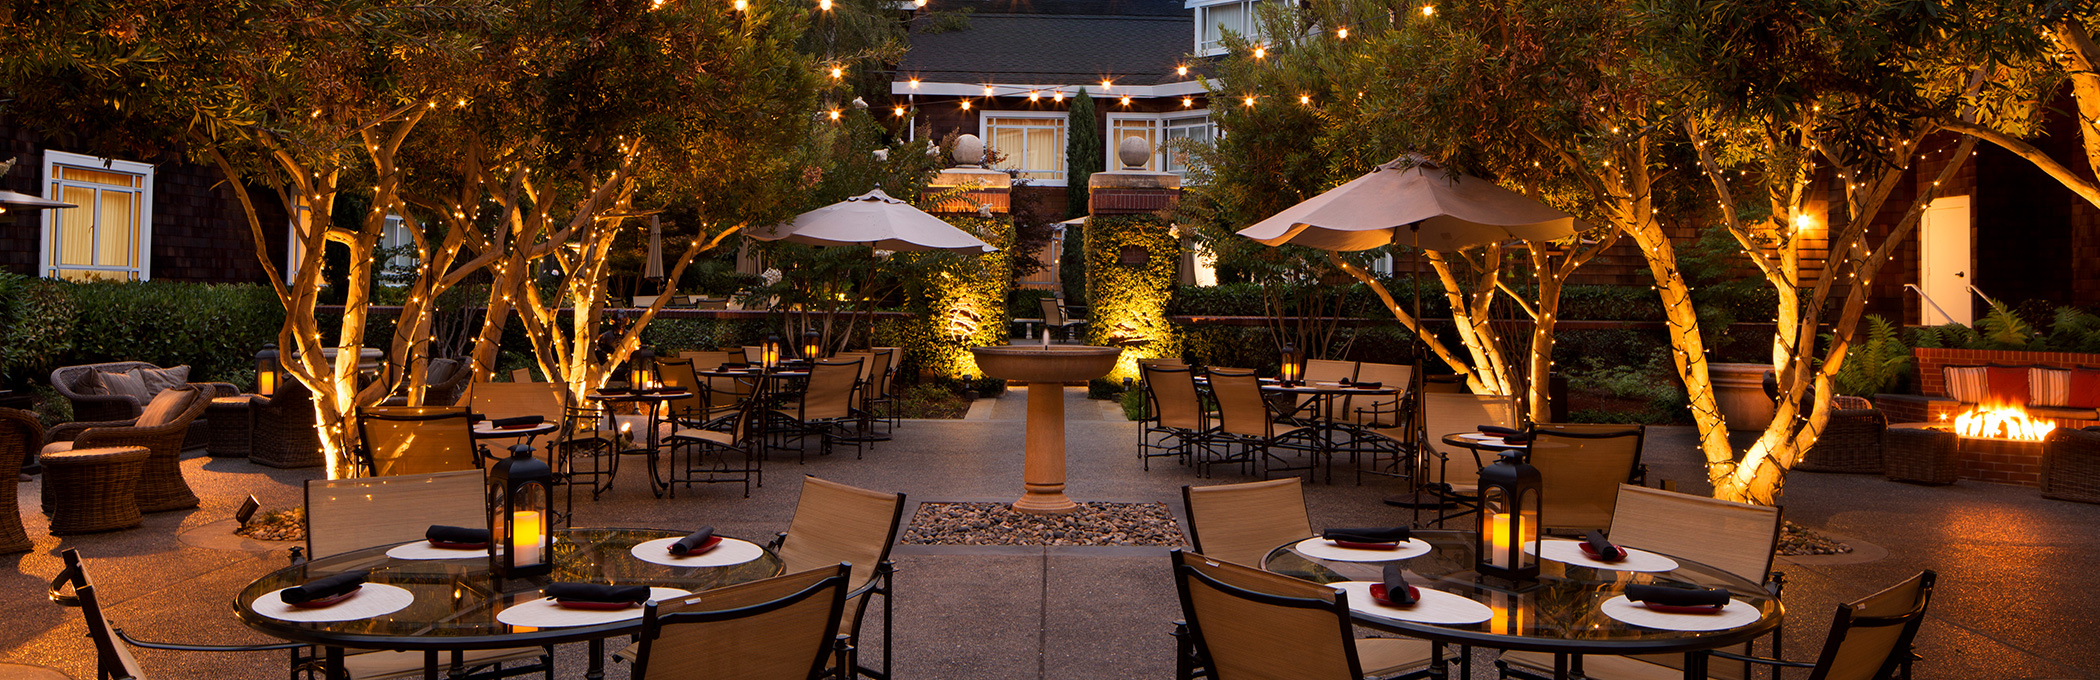 Courtyard dining tables in the evening with lighting on trees